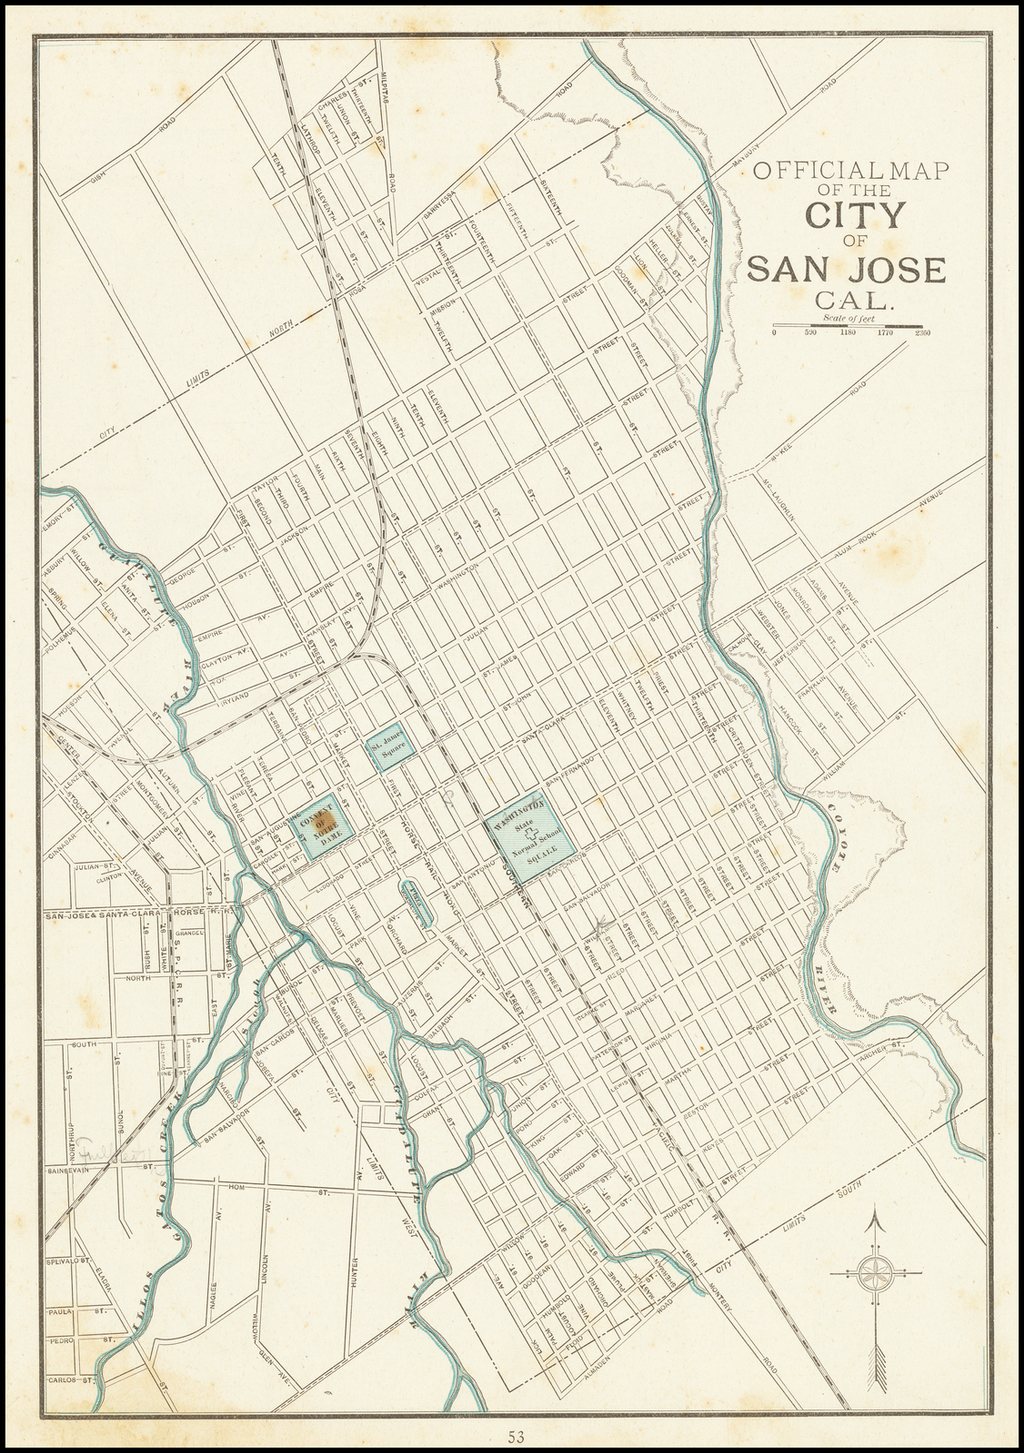 Official Map of The City of San Jose Cal. By George F. Cram